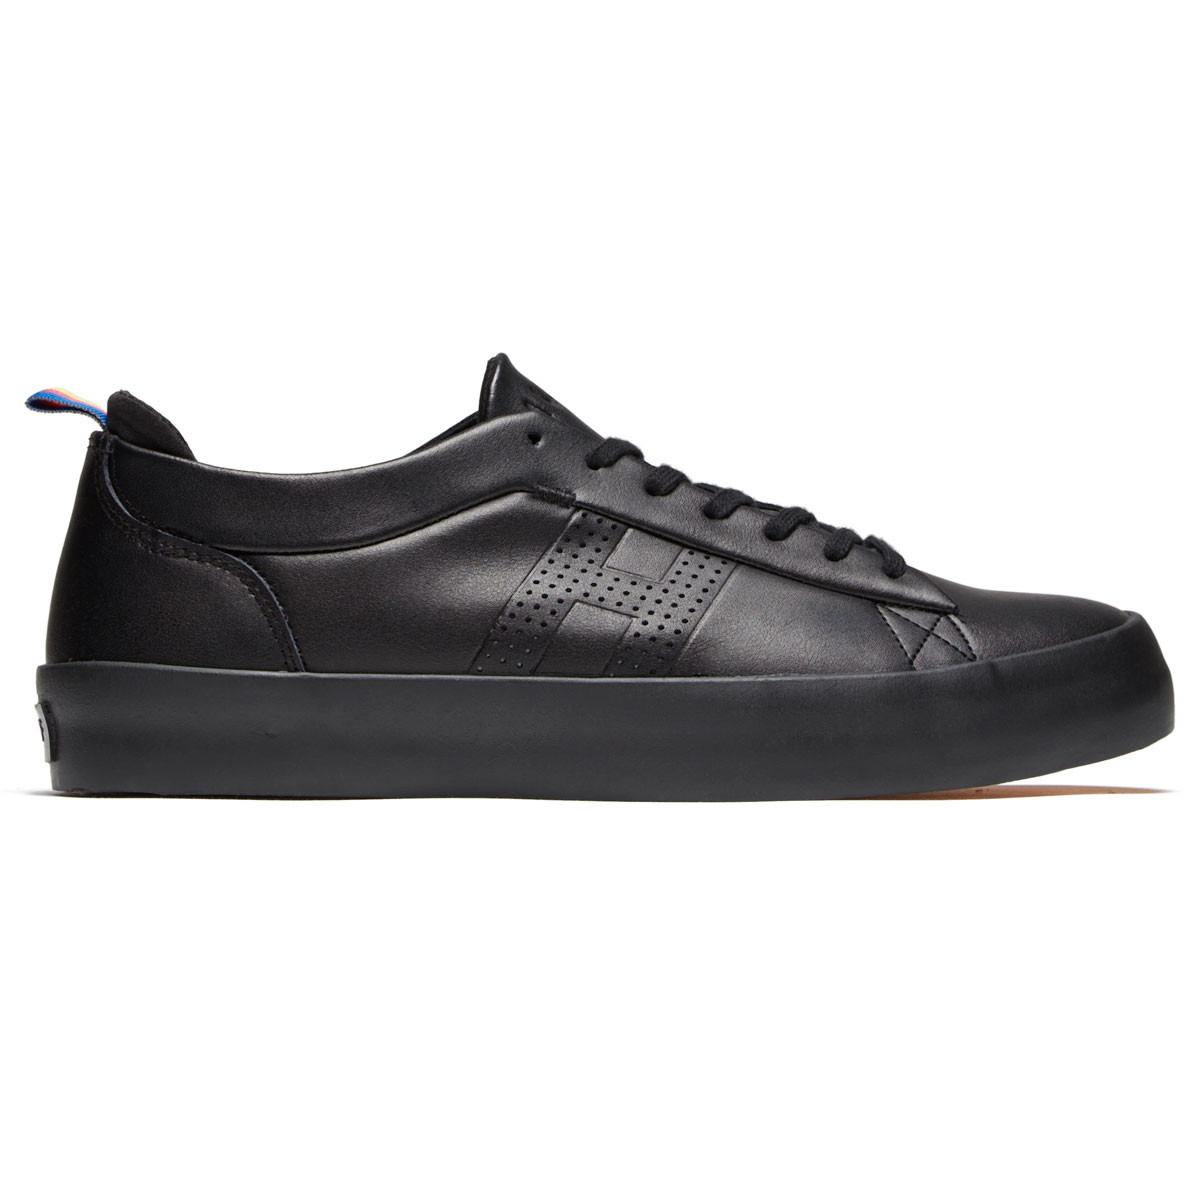 a4bedc5679 Huf Clive Shoes - Black Suede